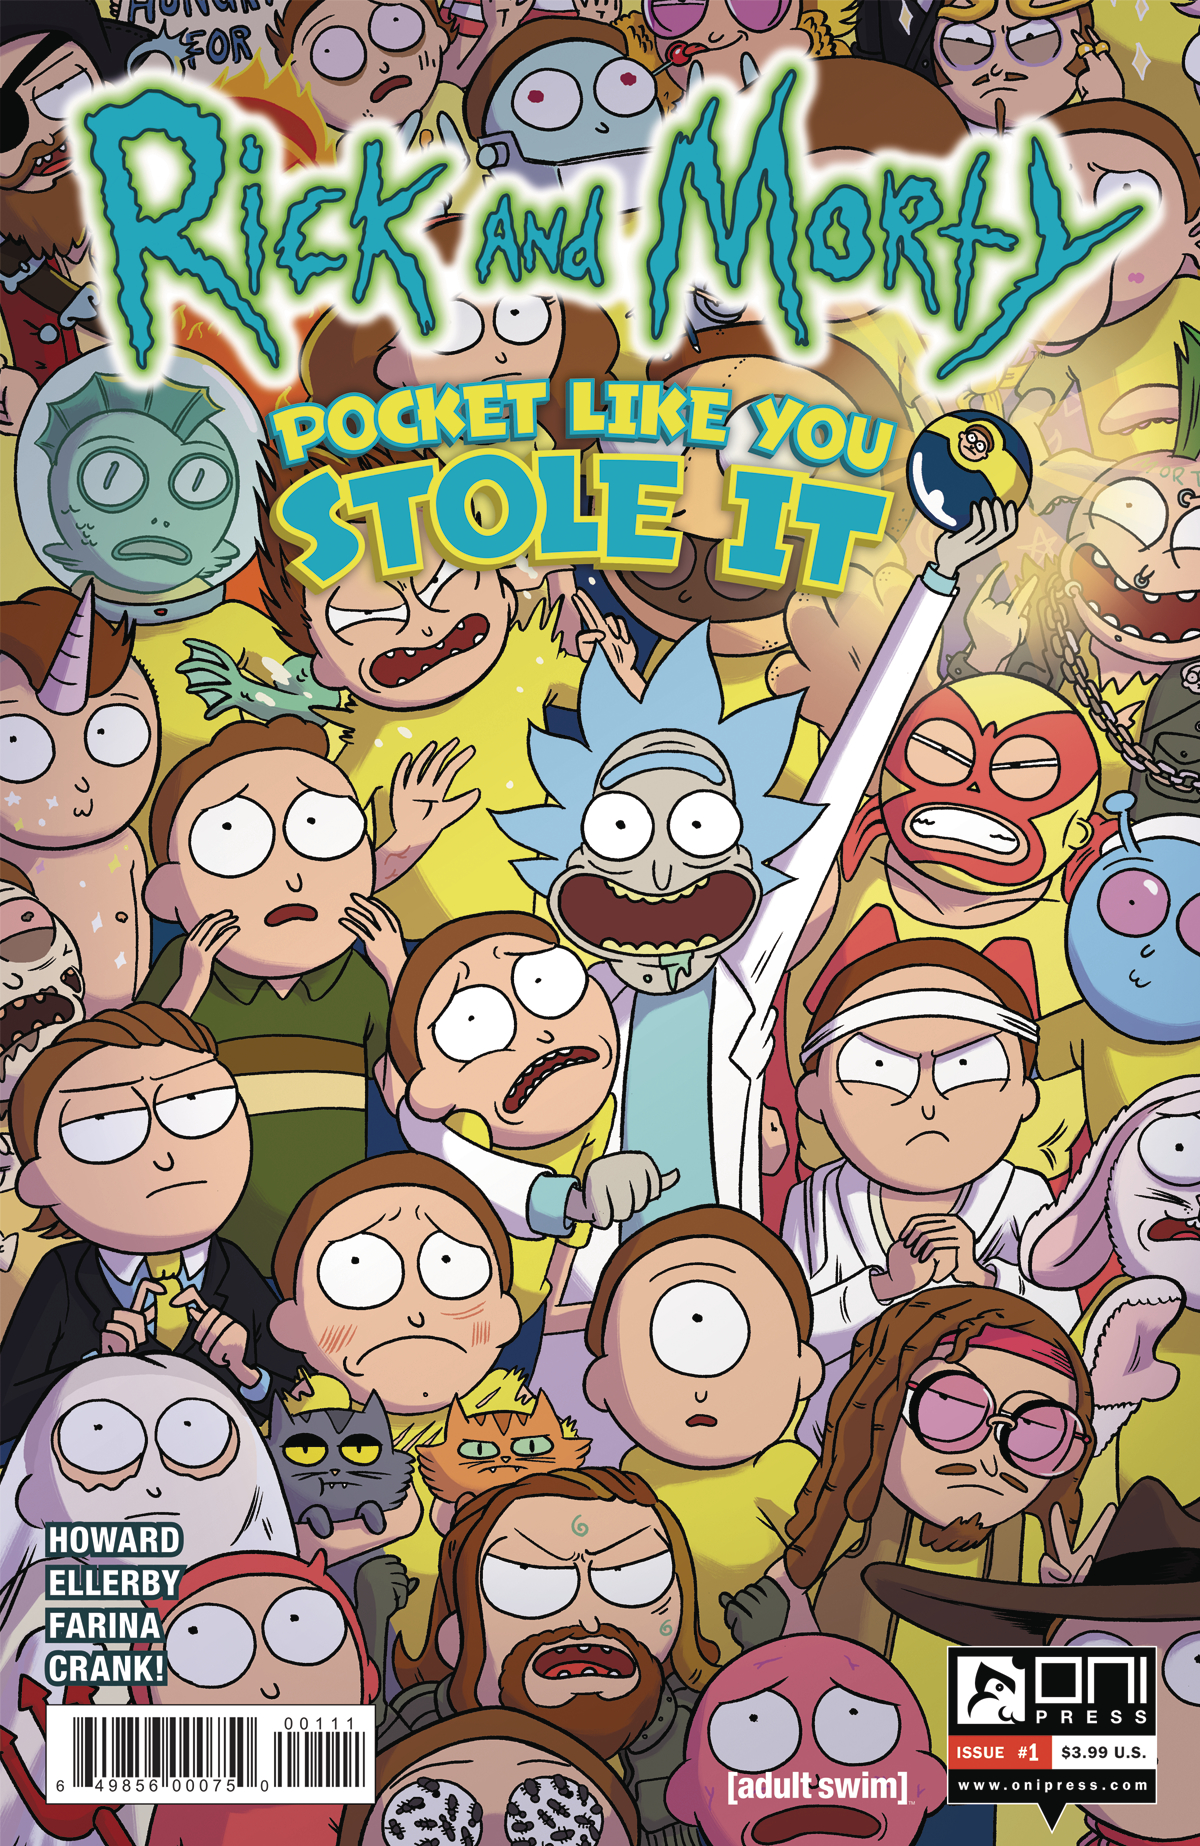 Rick and Morty: Pocket Like You Stole It #1